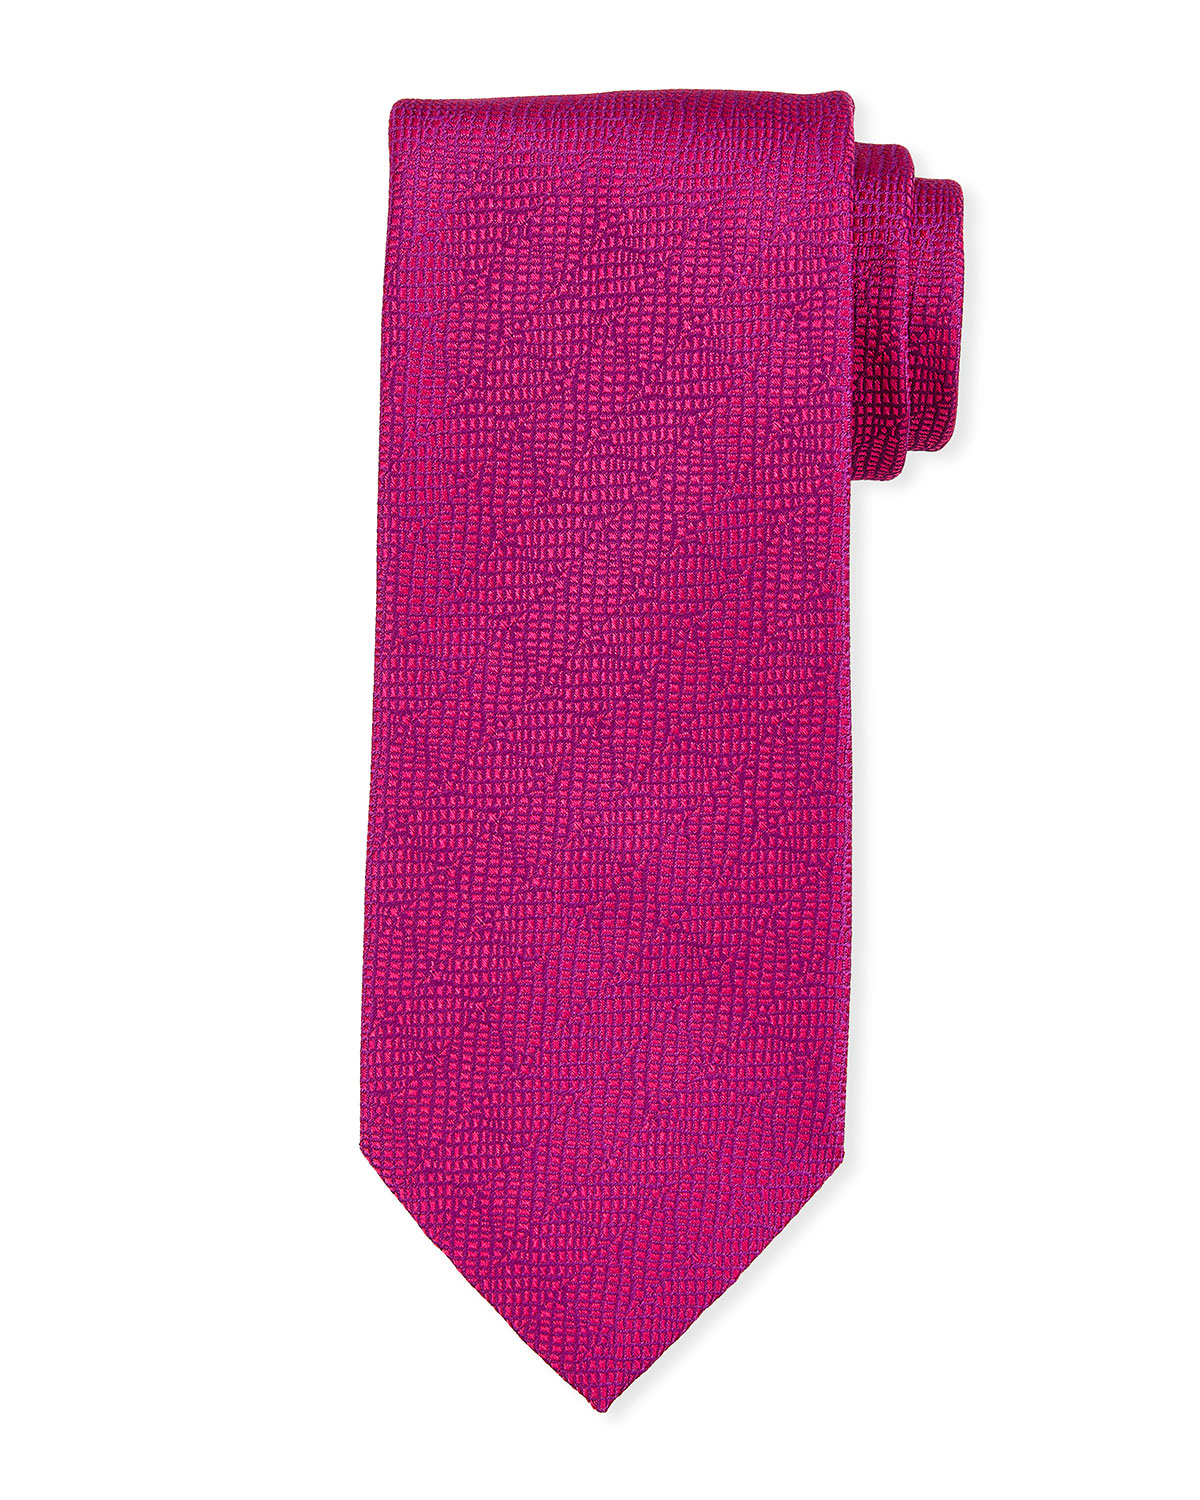 Charvet Textured Solid Silk Tie